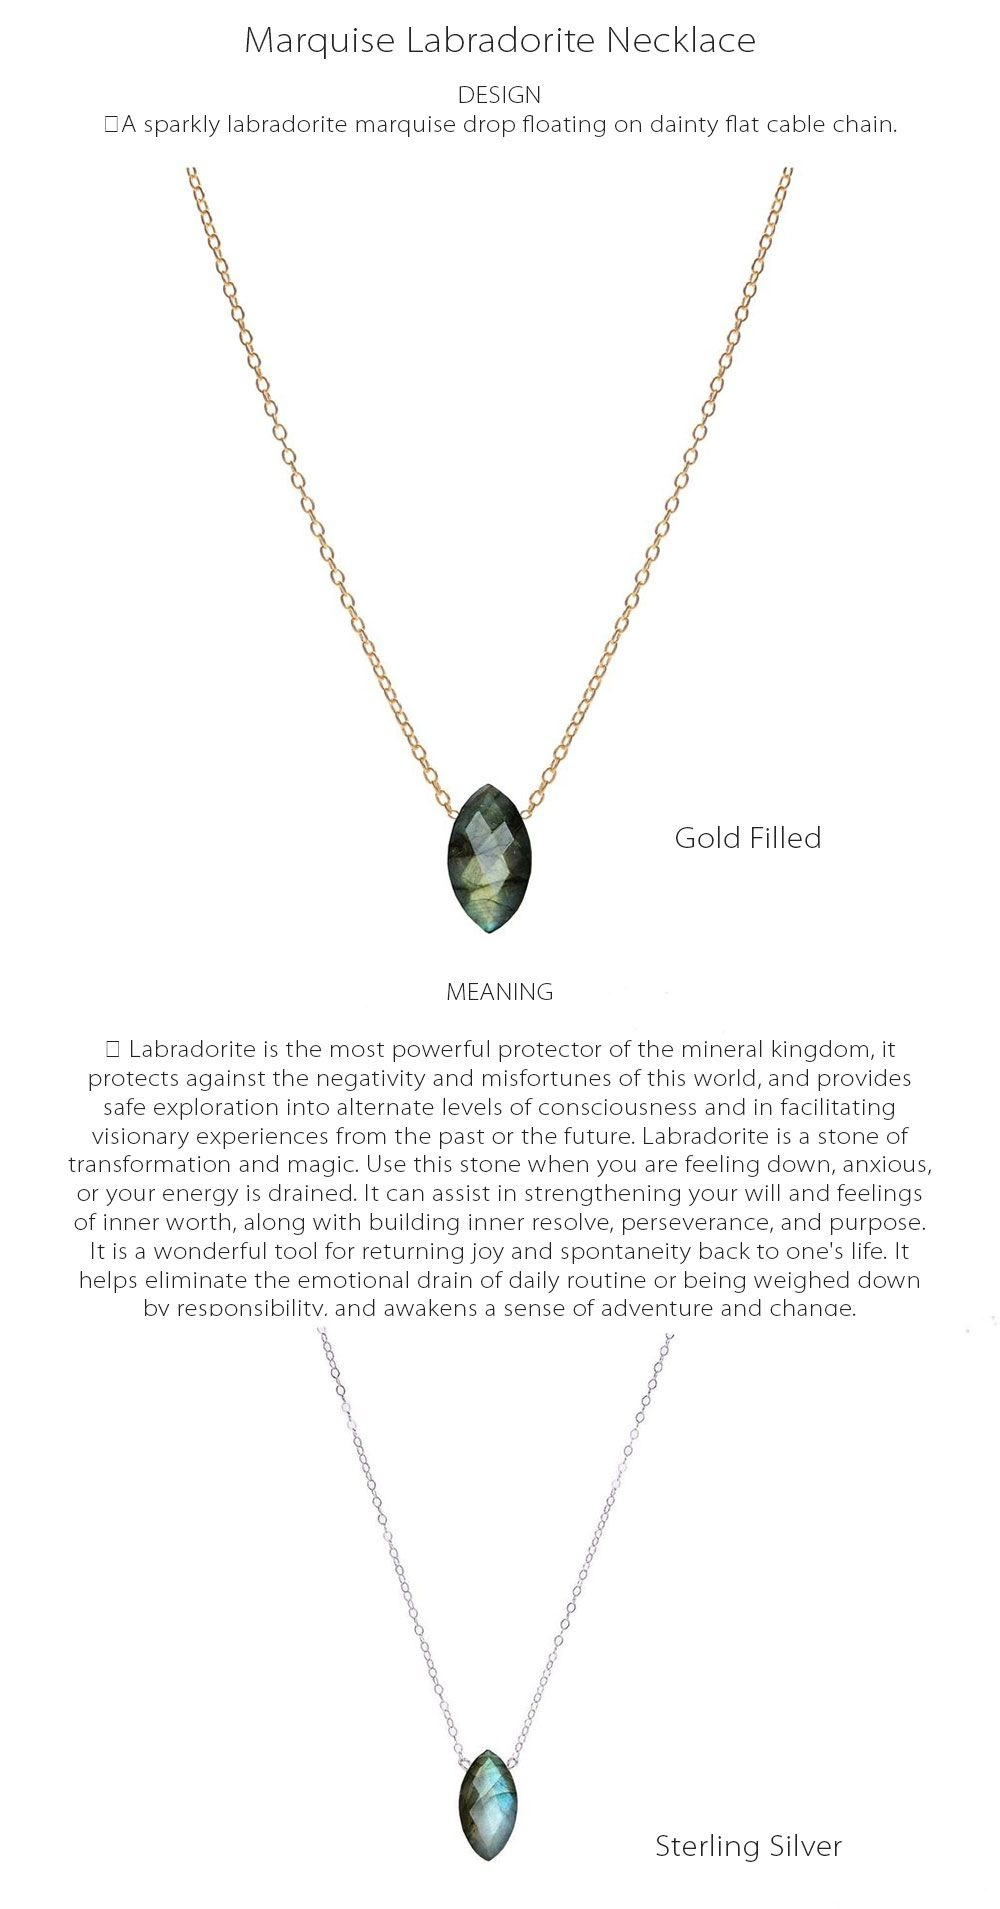 Marquise Labradorite Necklace Mineral Necklace